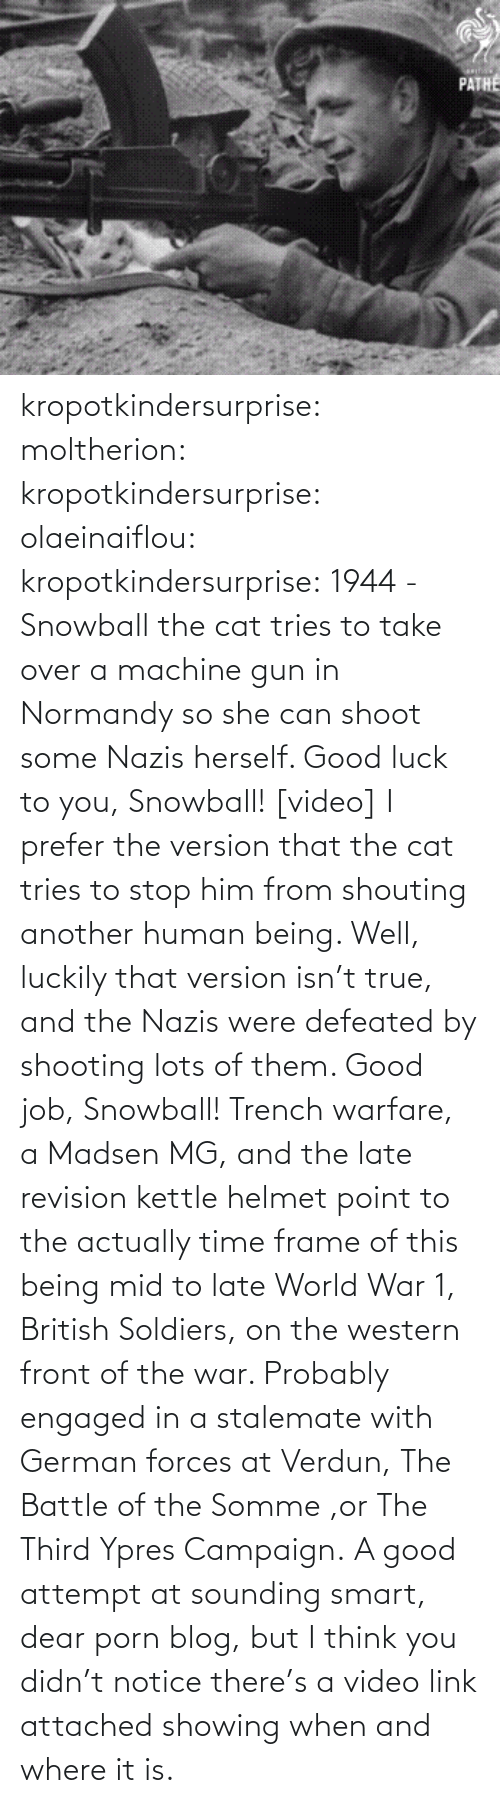 Think You: PATHE kropotkindersurprise: moltherion:  kropotkindersurprise:  olaeinaiflou:  kropotkindersurprise: 1944 - Snowball the cat tries to take over a machine gun in Normandy so she can shoot some Nazis herself. Good luck to you, Snowball! [video]  I prefer the version that the cat tries to stop him from shouting another human being.   Well, luckily that version isn't true, and the Nazis were defeated by shooting lots of them. Good job, Snowball!   Trench warfare, a Madsen MG, and the late revision kettle helmet point to the actually time frame of this being mid to late World War 1, British Soldiers, on the western front of the war. Probably engaged in a stalemate with German forces at Verdun, The Battle of the Somme ,or The Third Ypres Campaign.  A good attempt at sounding smart, dear porn blog, but I think you didn't notice there's a video link attached showing when and where it is.